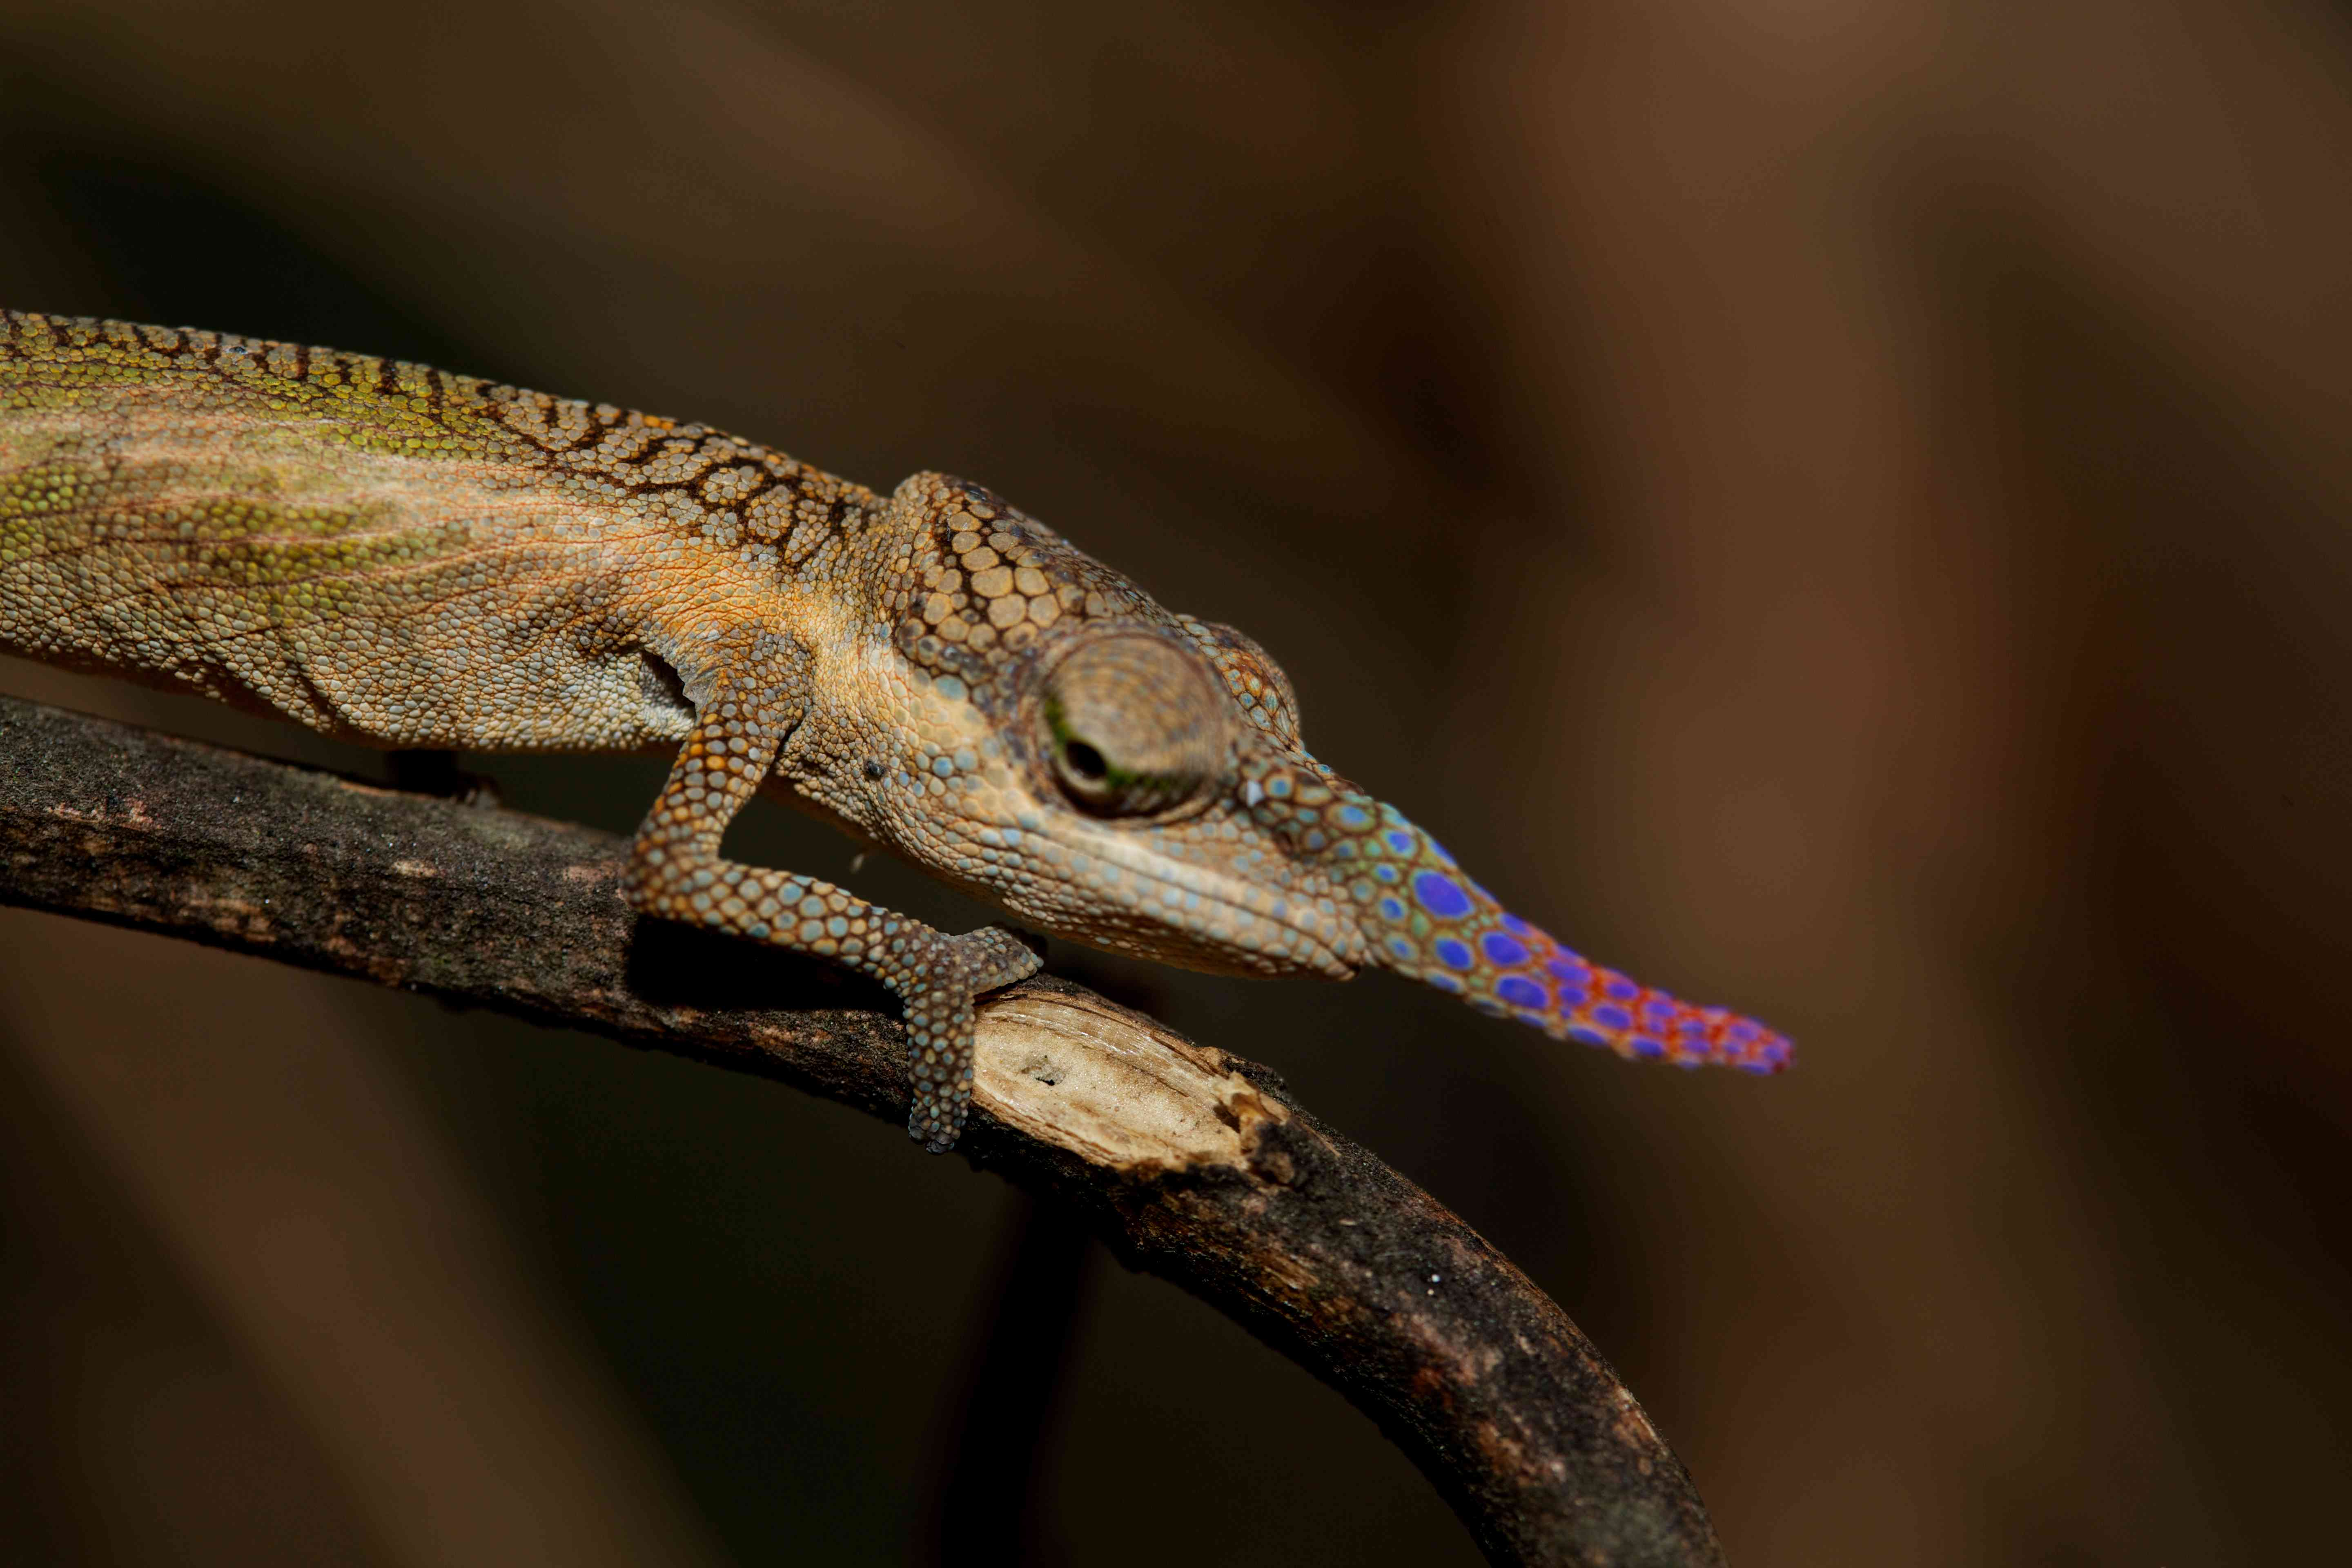 Lance-nosed chameleon with colorful snout on branch